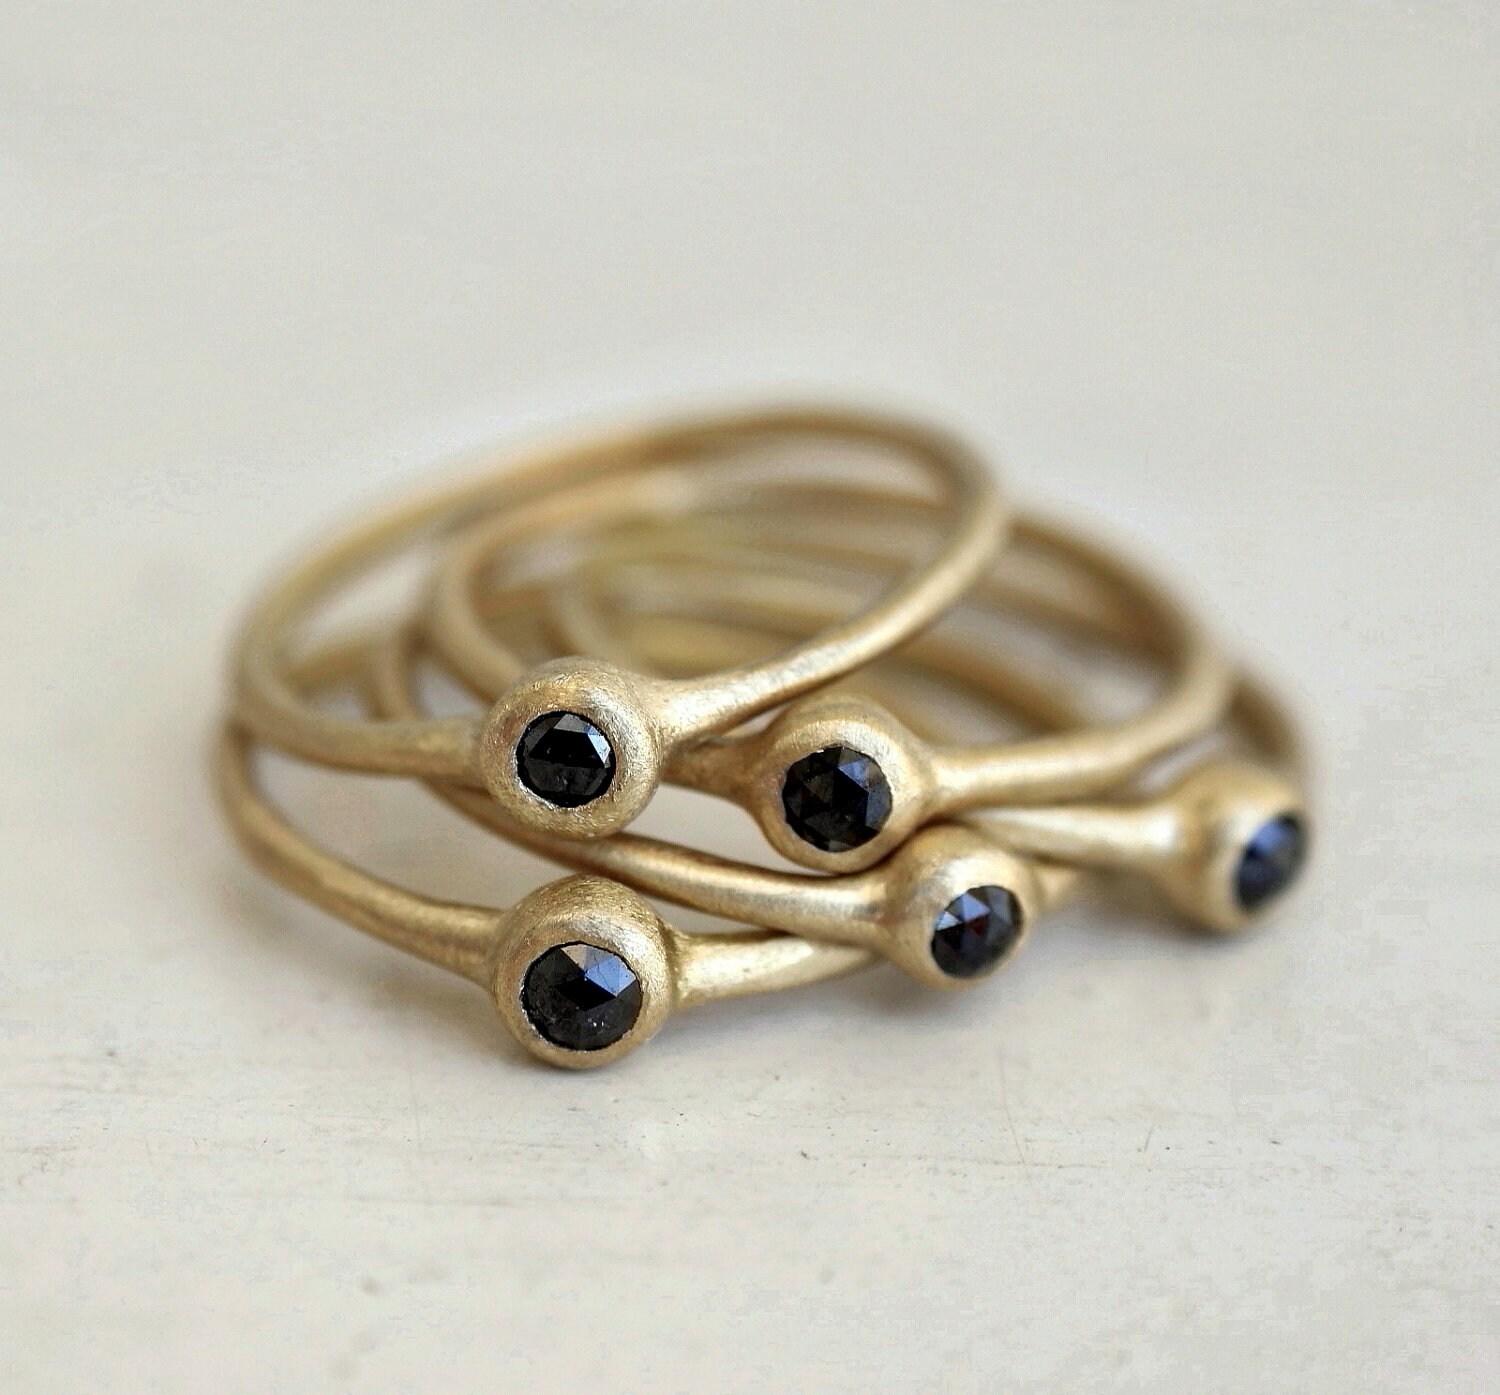 Nestled set of Black rose cut diamond rings. Connect the dots. Odelia. - SundayOwl